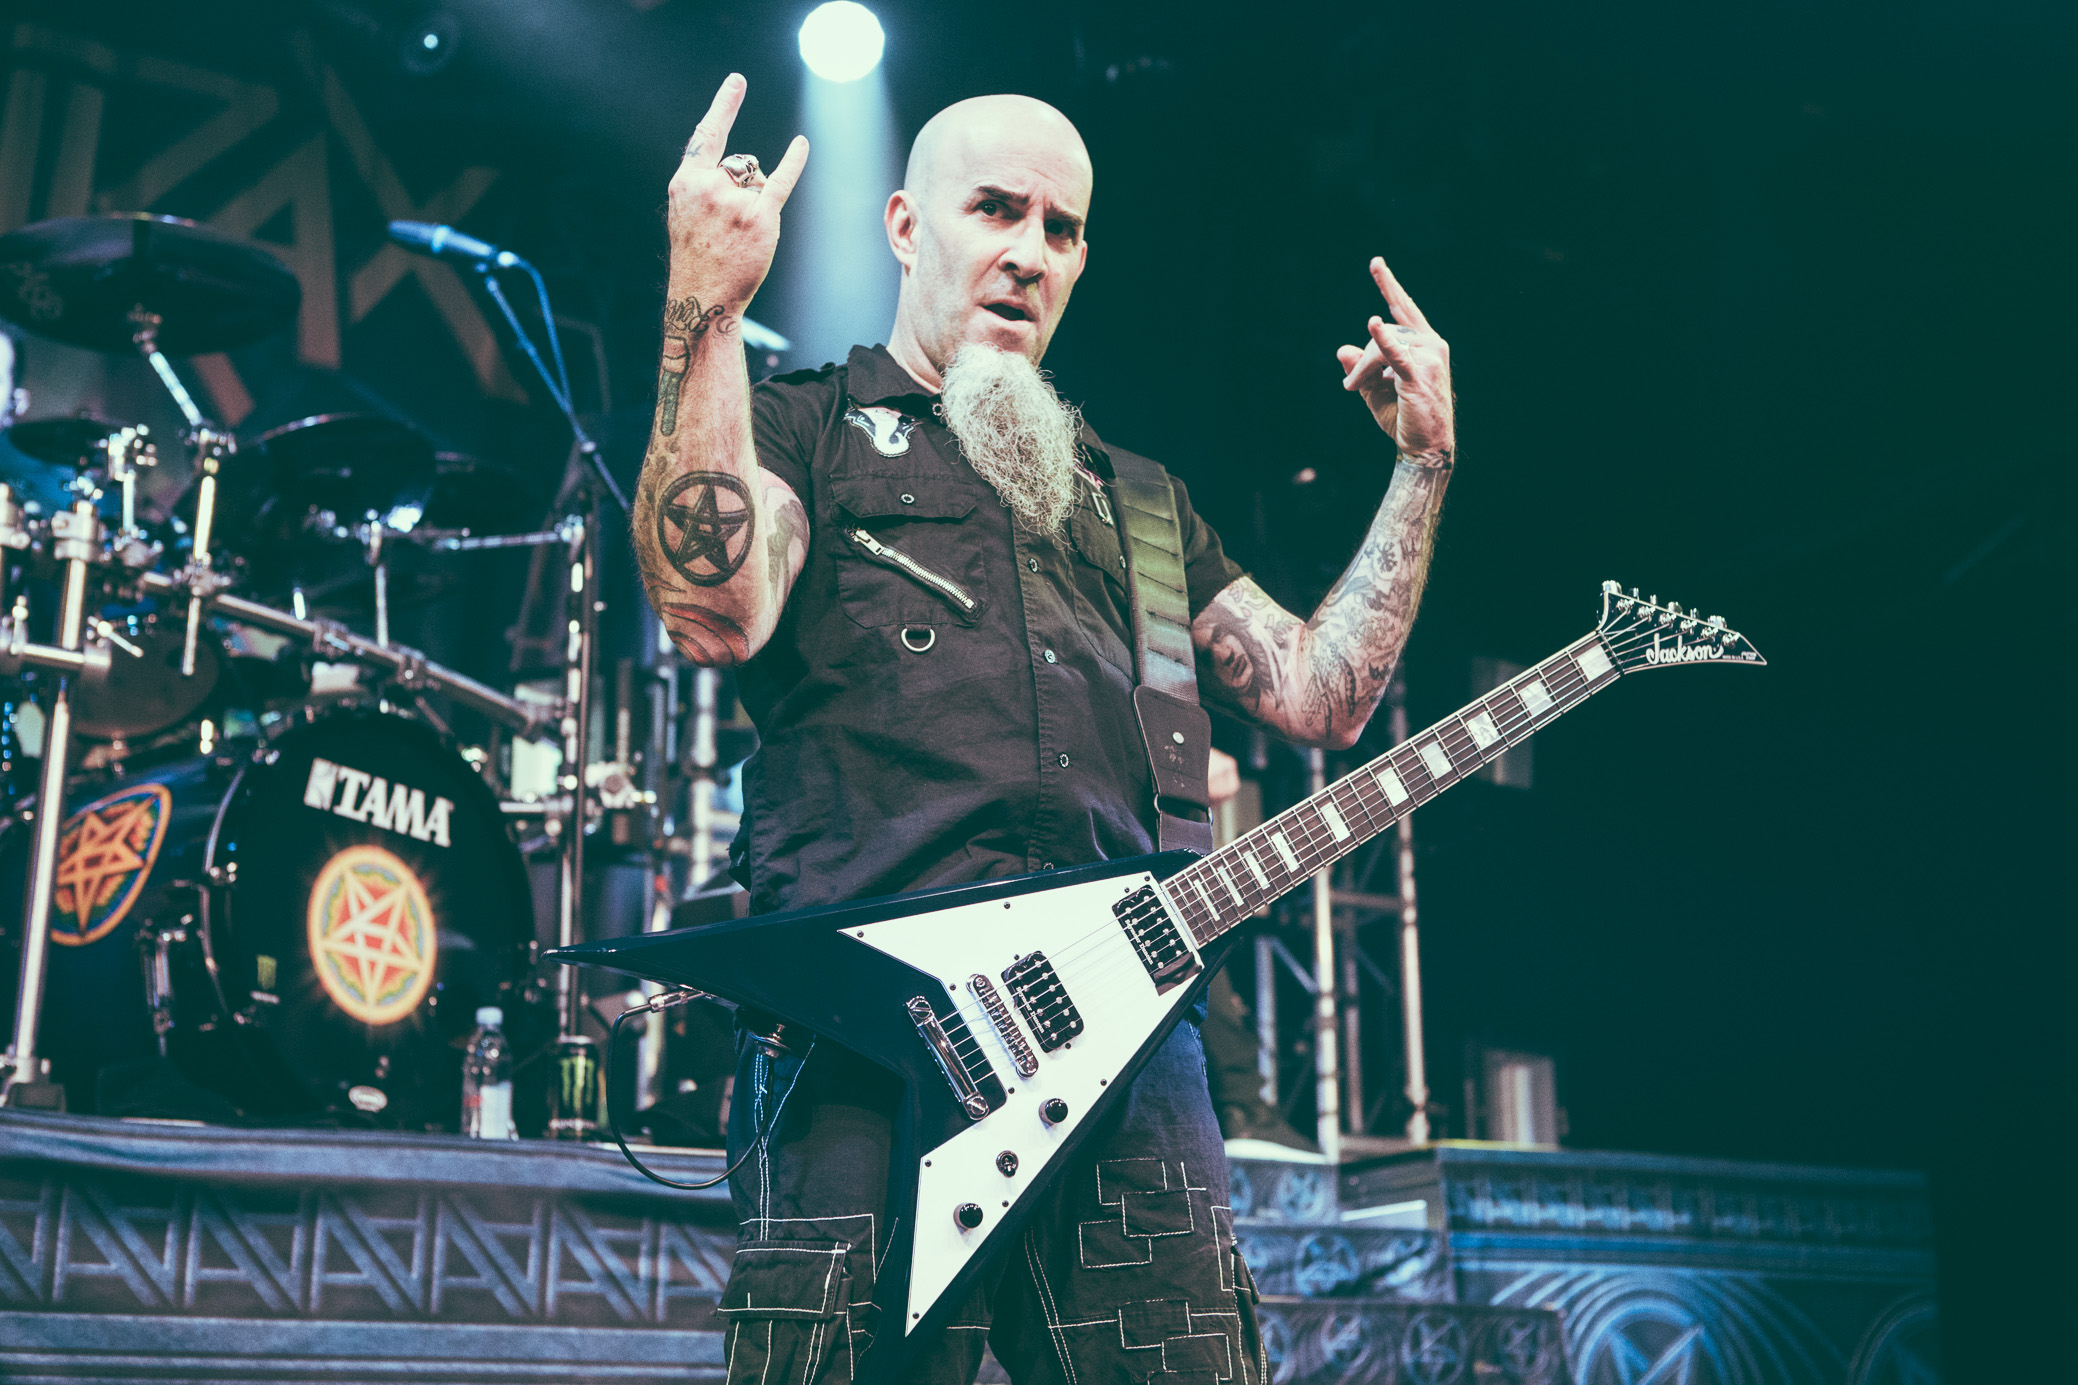 Scott Ian of Anthrax performs at Iron City in Birmingham, Alabama on February 6th, 2018. (Photo by David A. Smith/DSmithScenes)